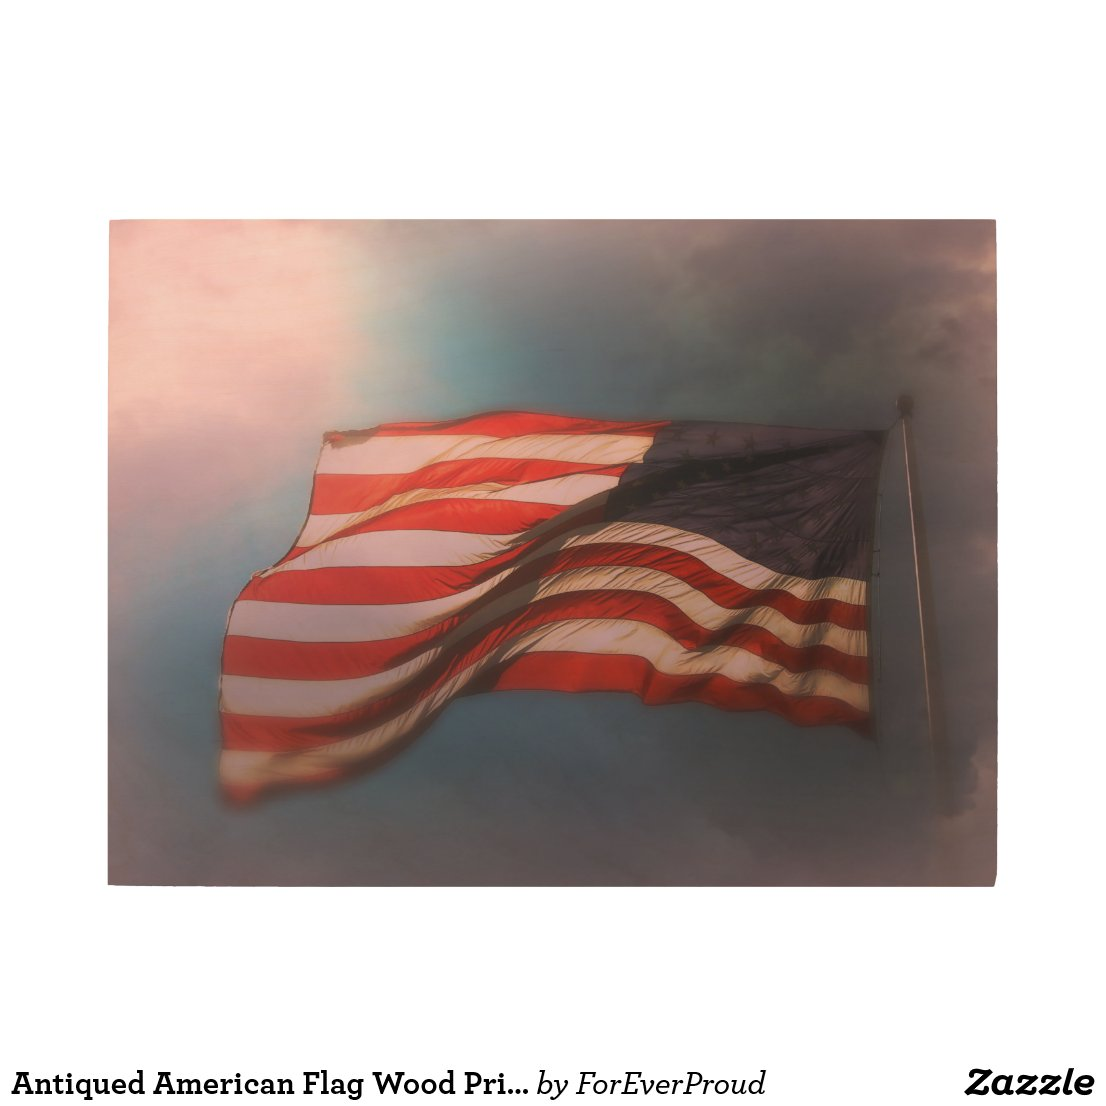 Antiqued American Flag Wood Print 24 x 18